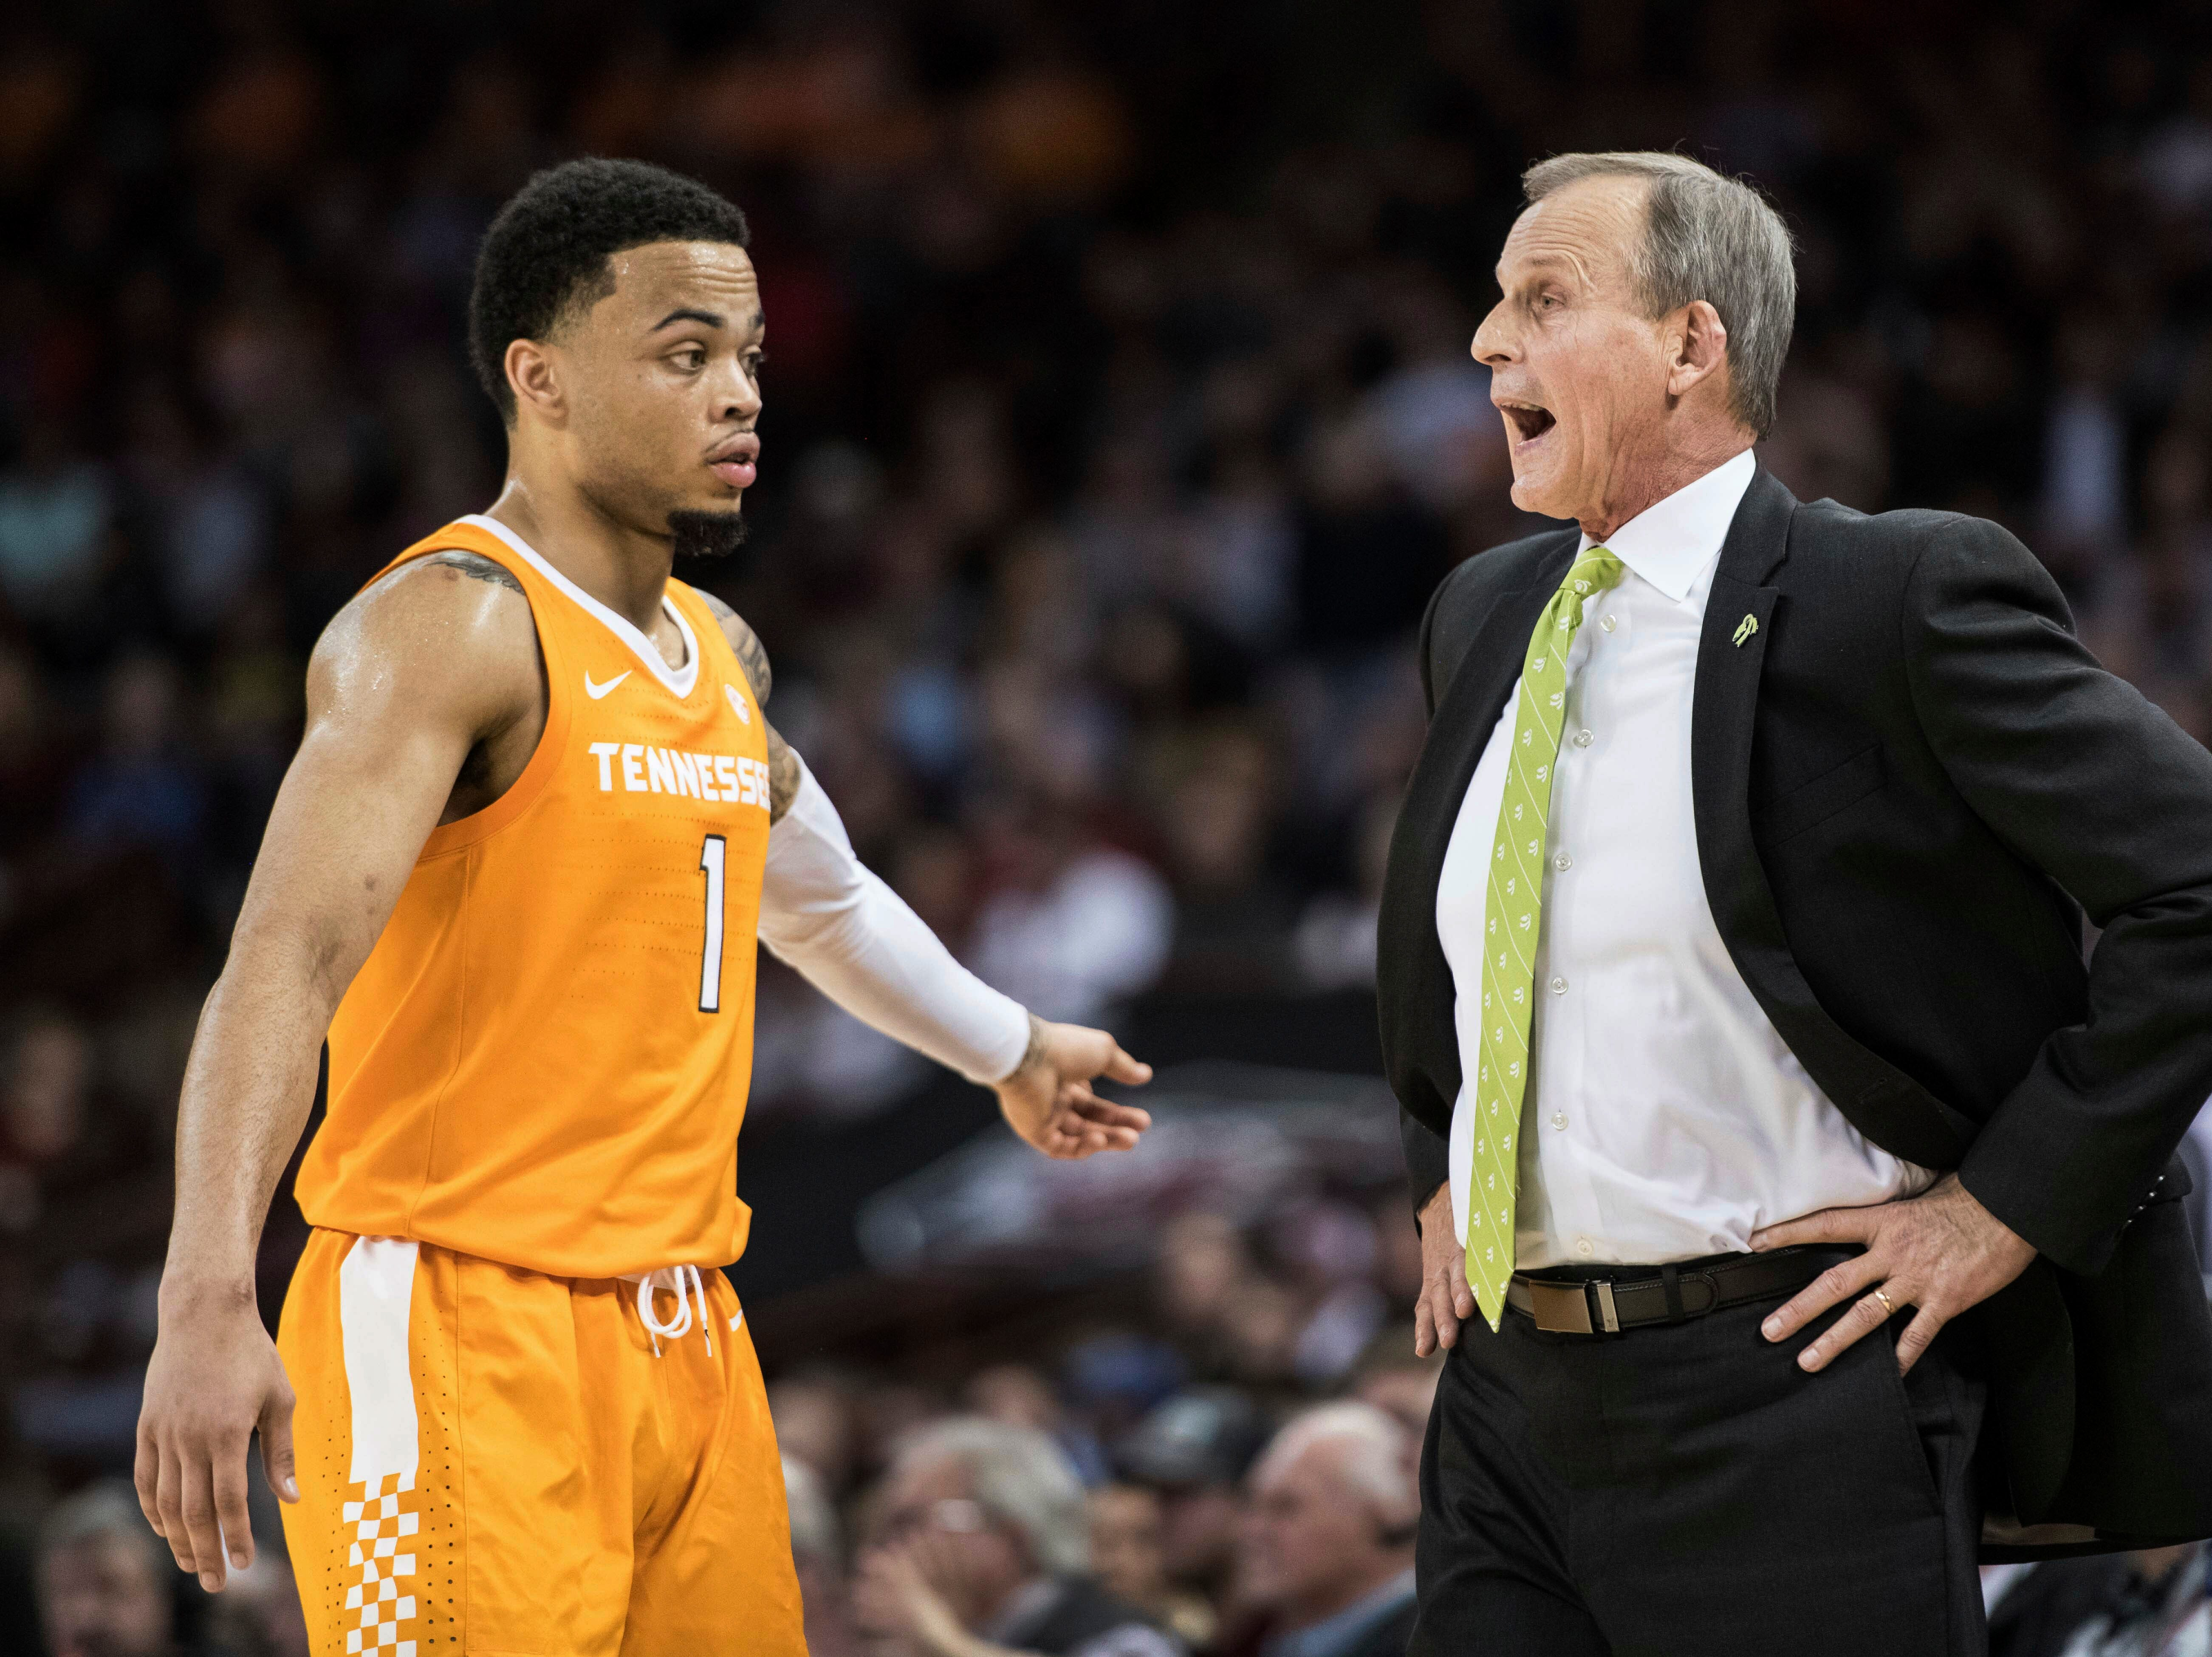 Tennessee head coach Rick Barnes shouts at guard Lamonte Turner (1) during the first half of an NCAA college basketball game against South Carolina Tuesday, Jan. 29, 2019, in Columbia, S.C.